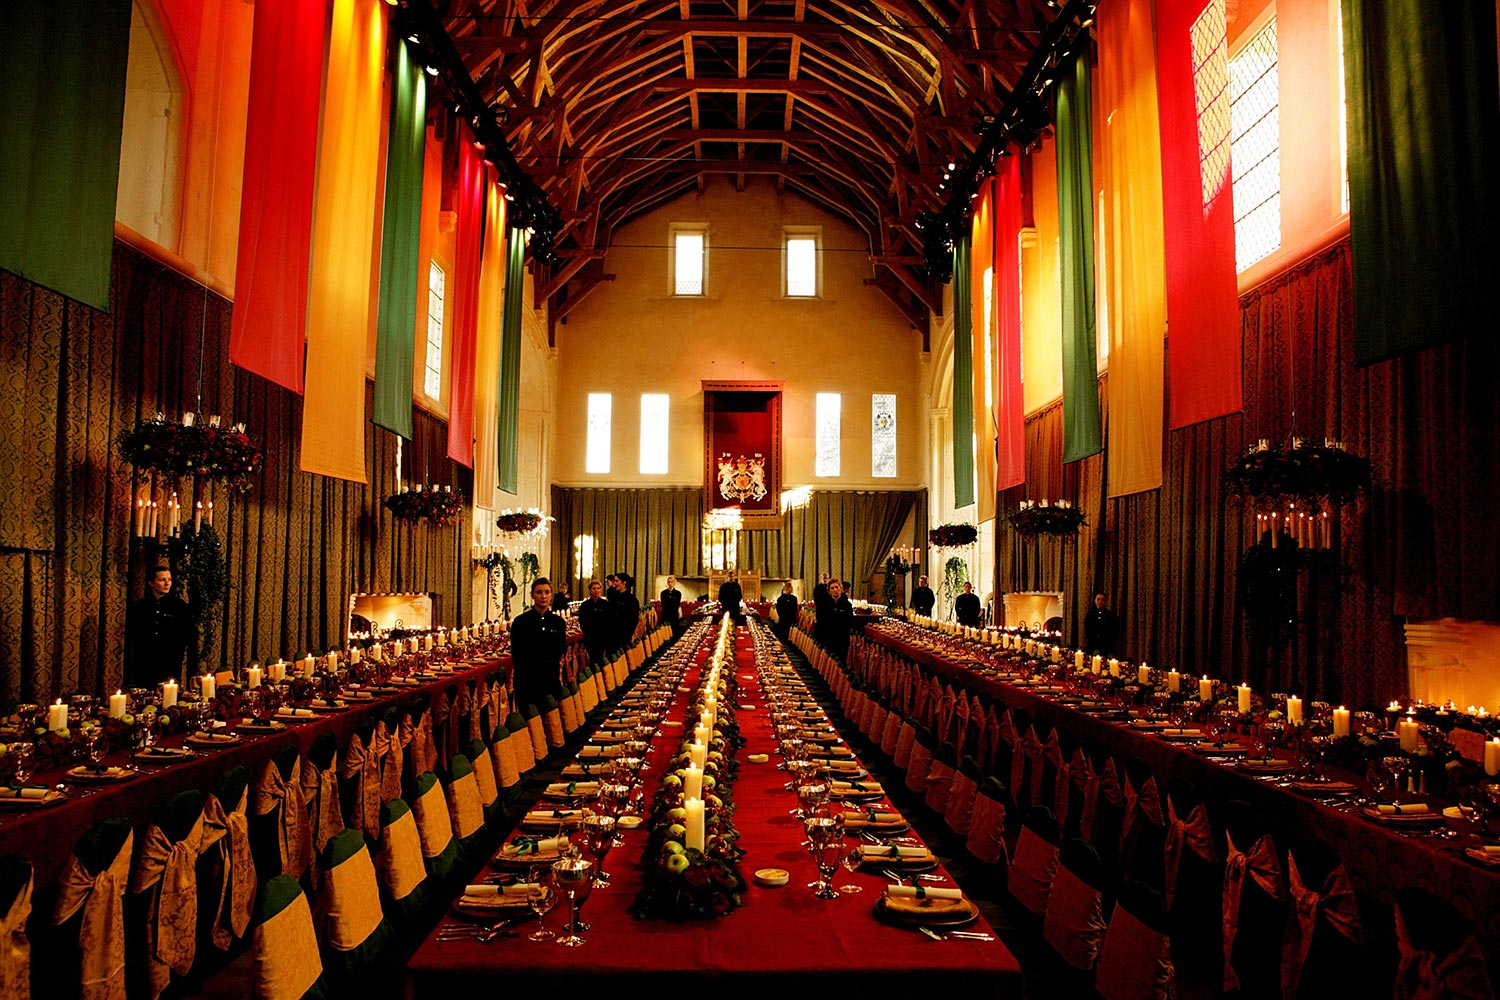 Scottish castle banquet